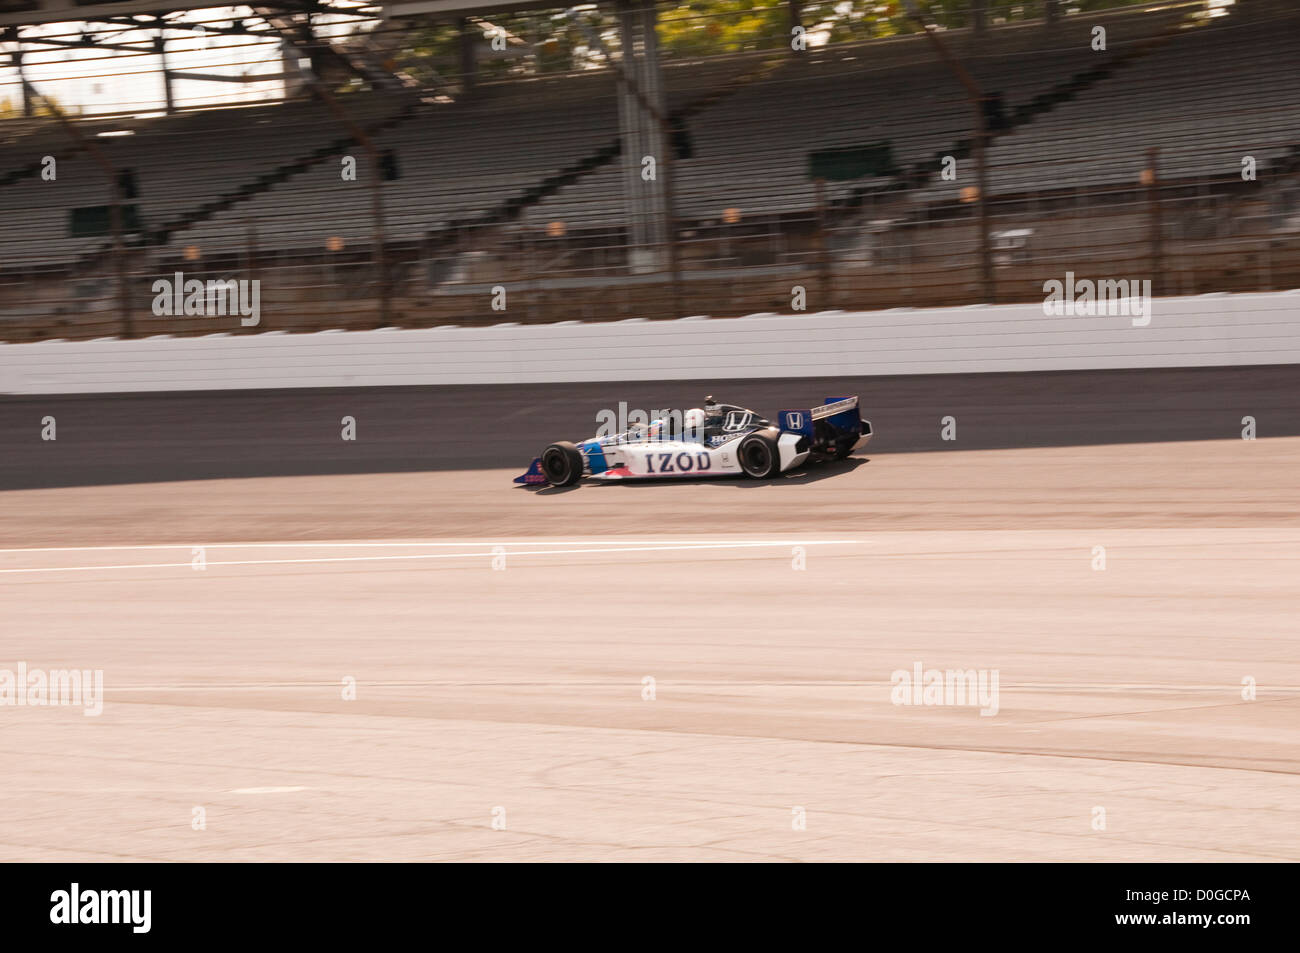 USA, Indiana, Indianapolis Motor Speedway, tourist riding back seat  Indy car around track with real Indy driver - Stock Image